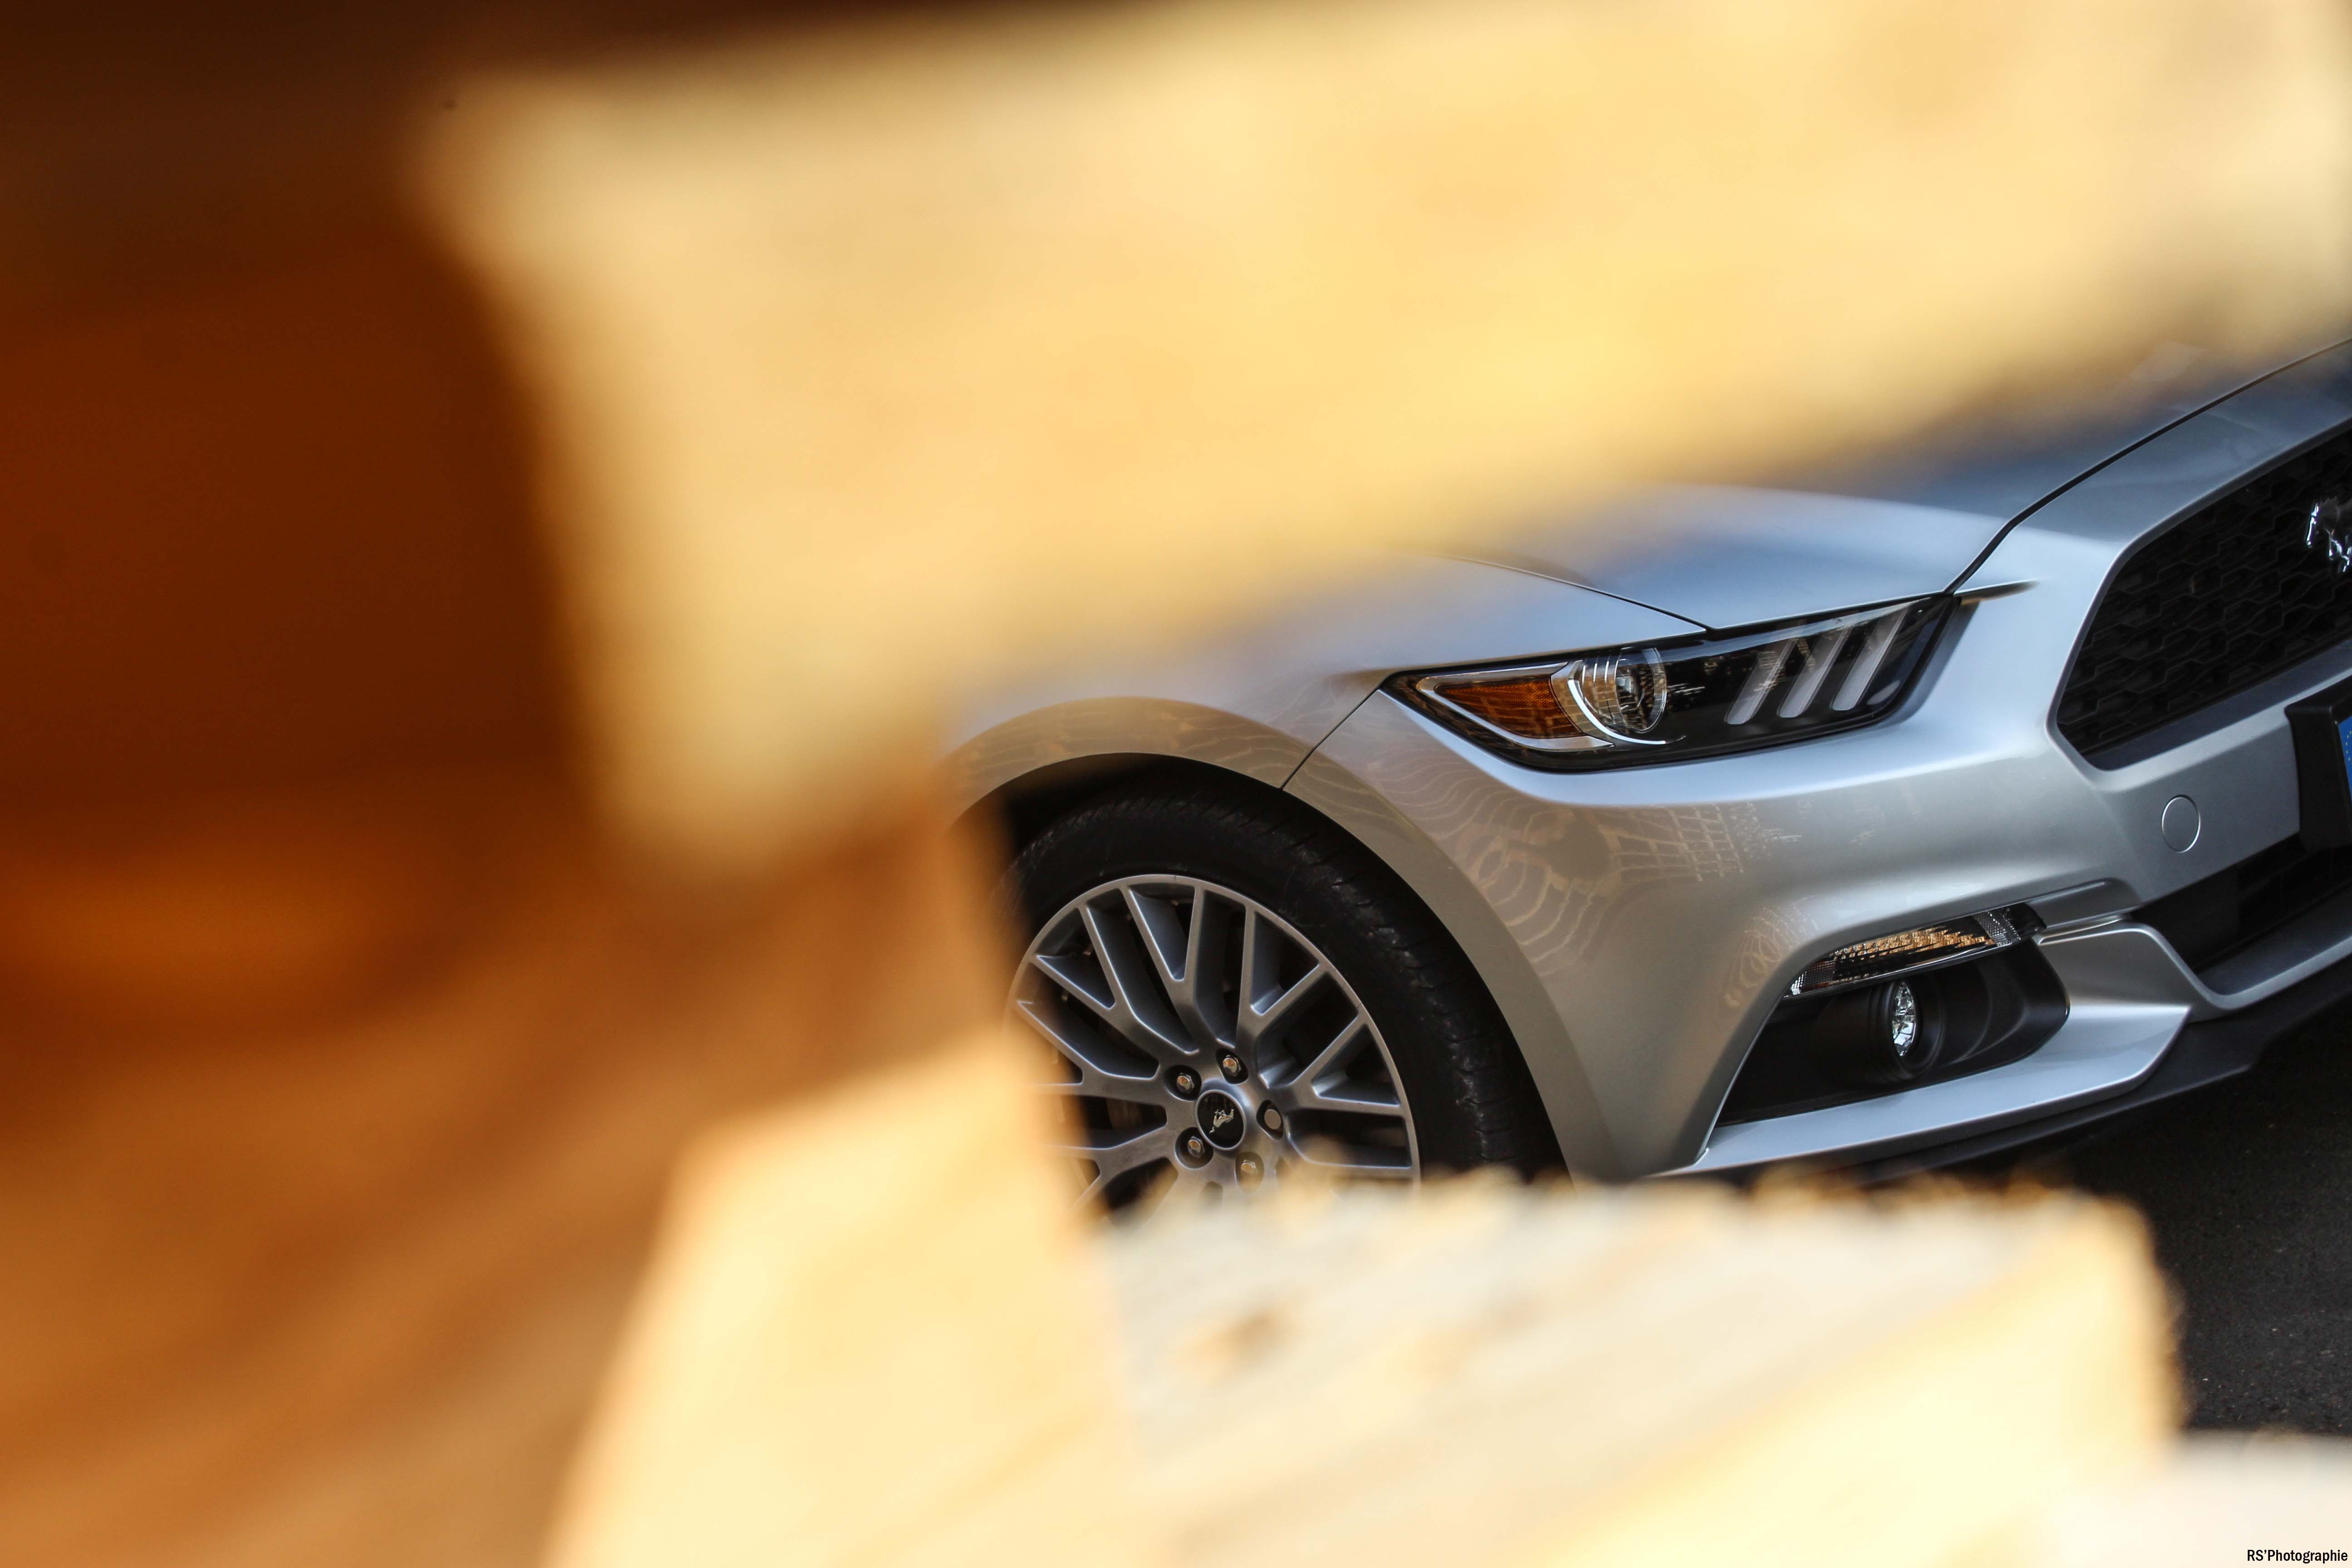 fordmustangeconvertible32-ford-mustang-convertible-ecoboost-avant-front-Arnaud Demasier-RSPhotographie